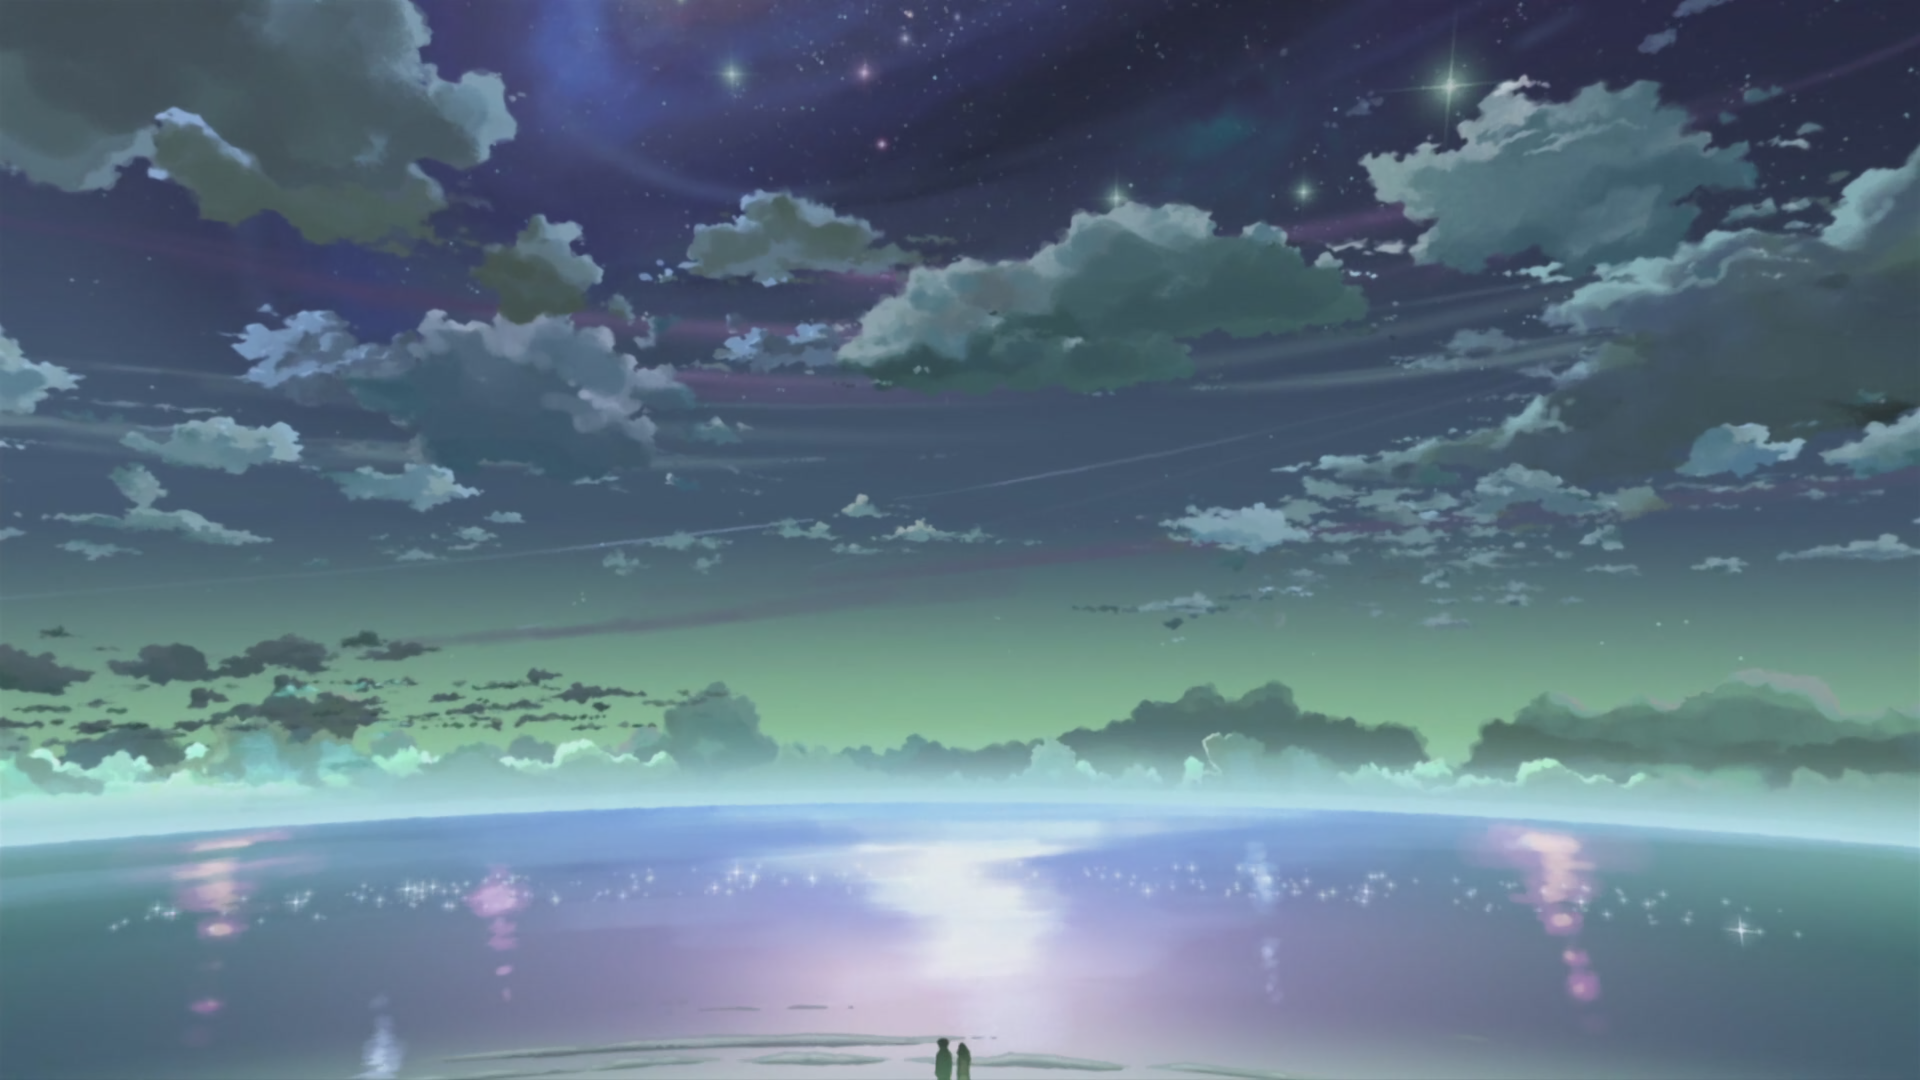 5 Centimeters Per Second Hd Wallpaper Background Image